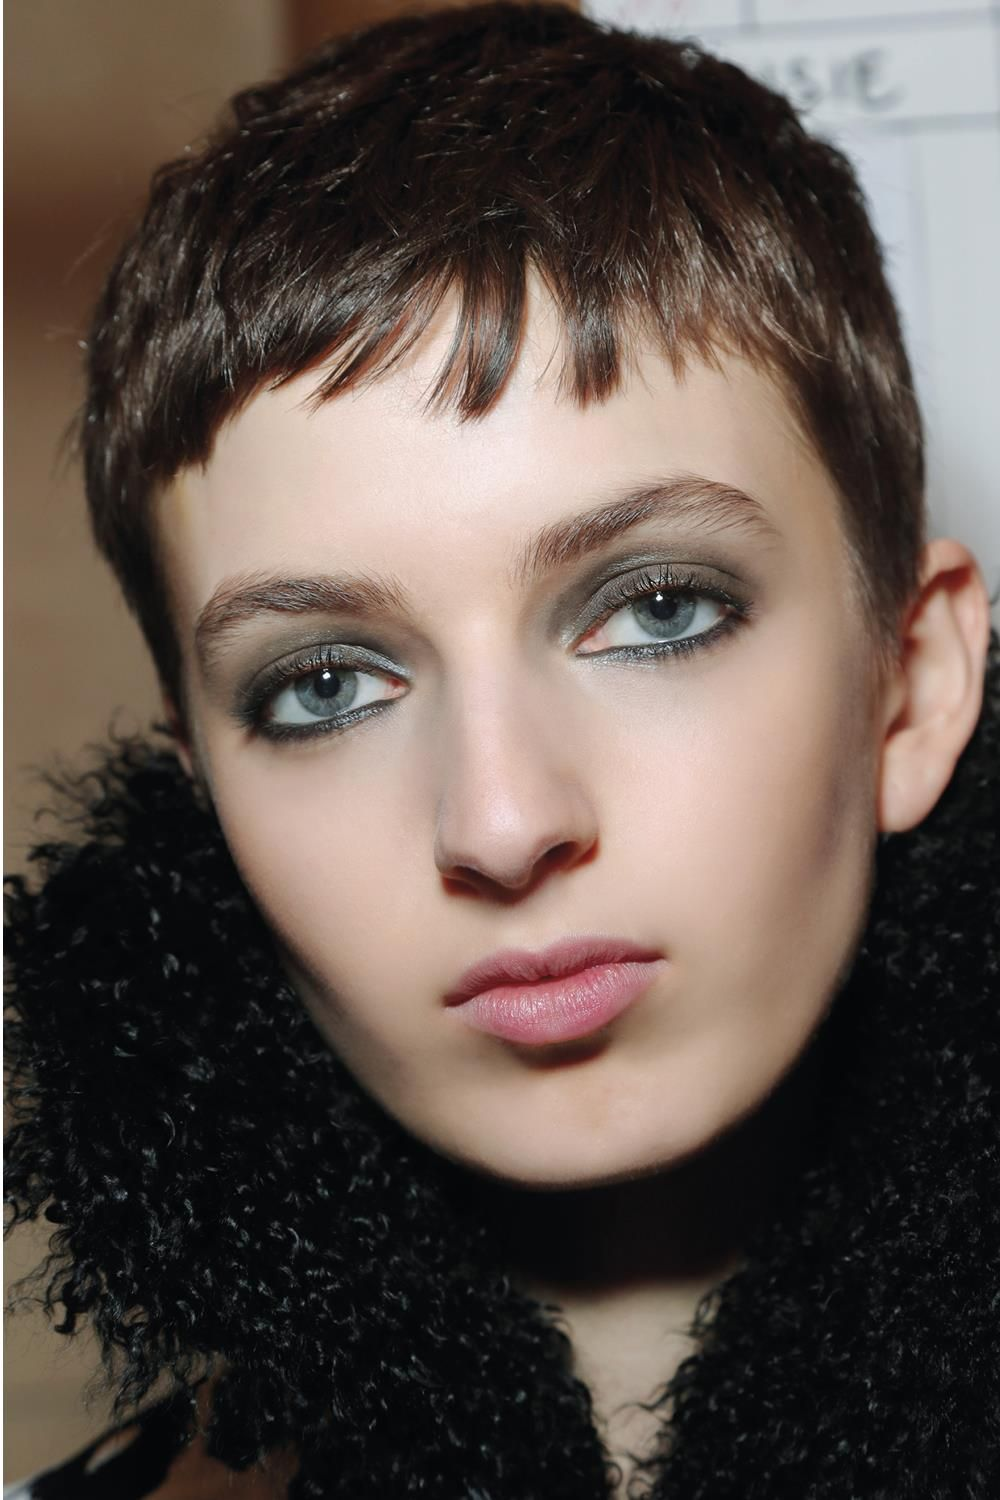 30+ Short hairstyles with bangs 2020 ideas